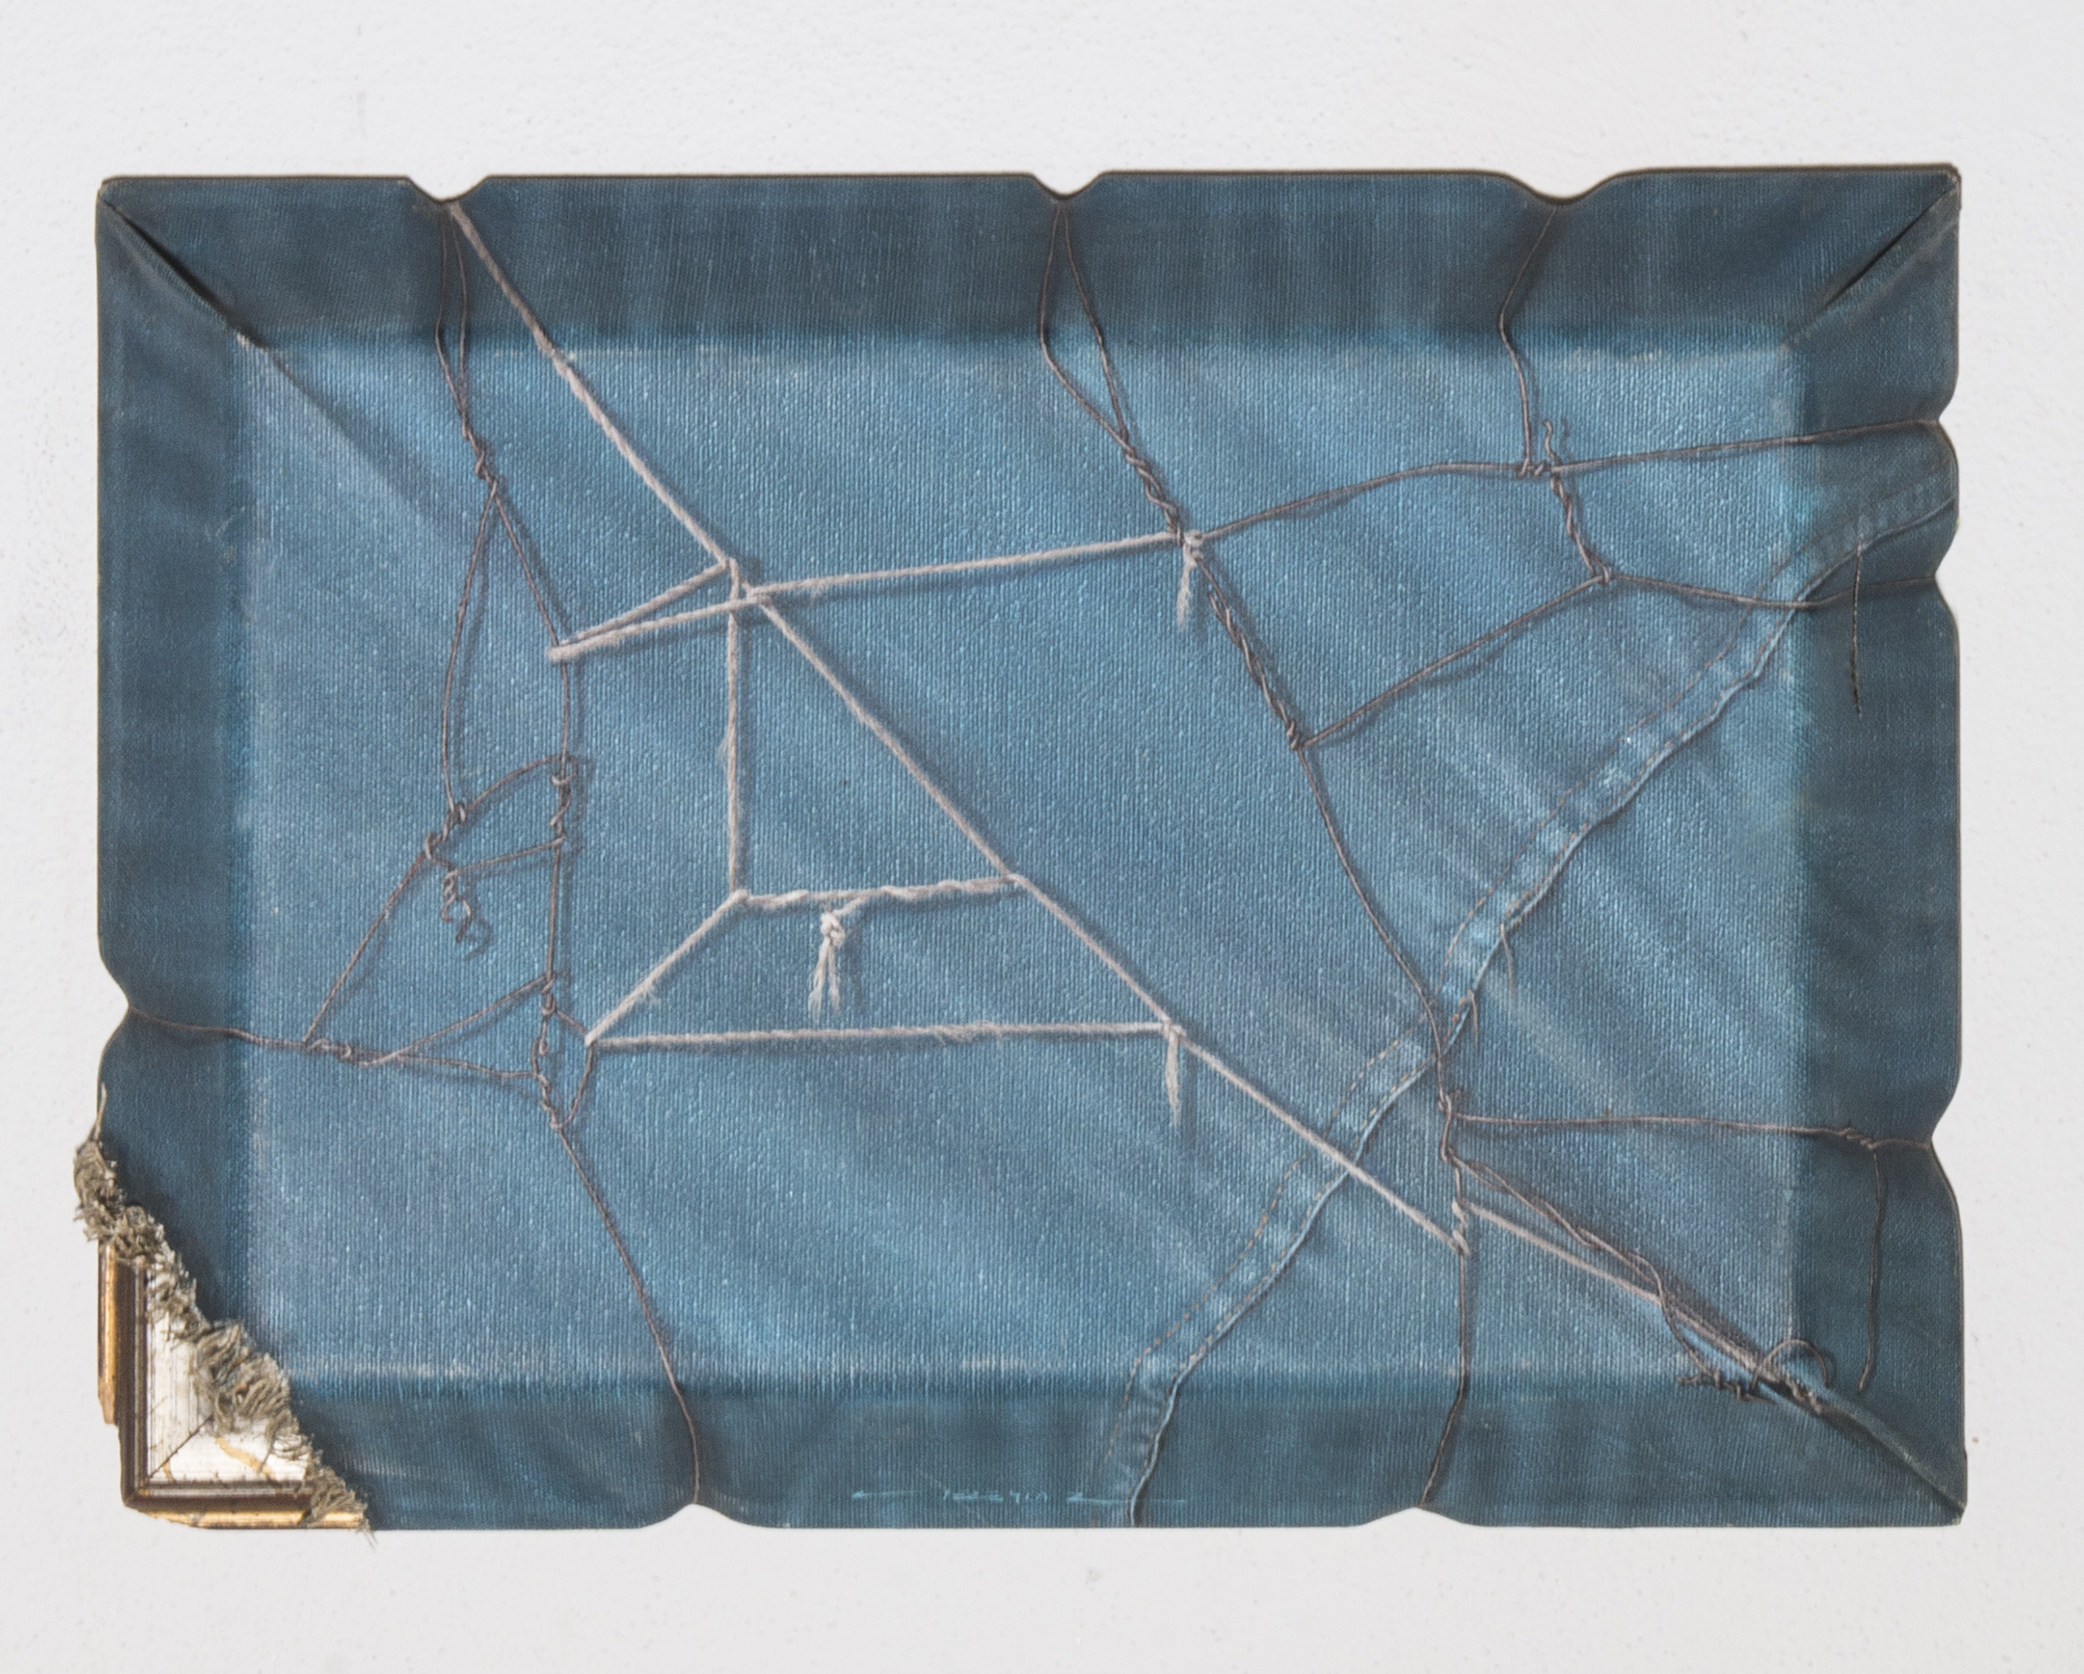 TWY 1022 - works painting 1974-1988